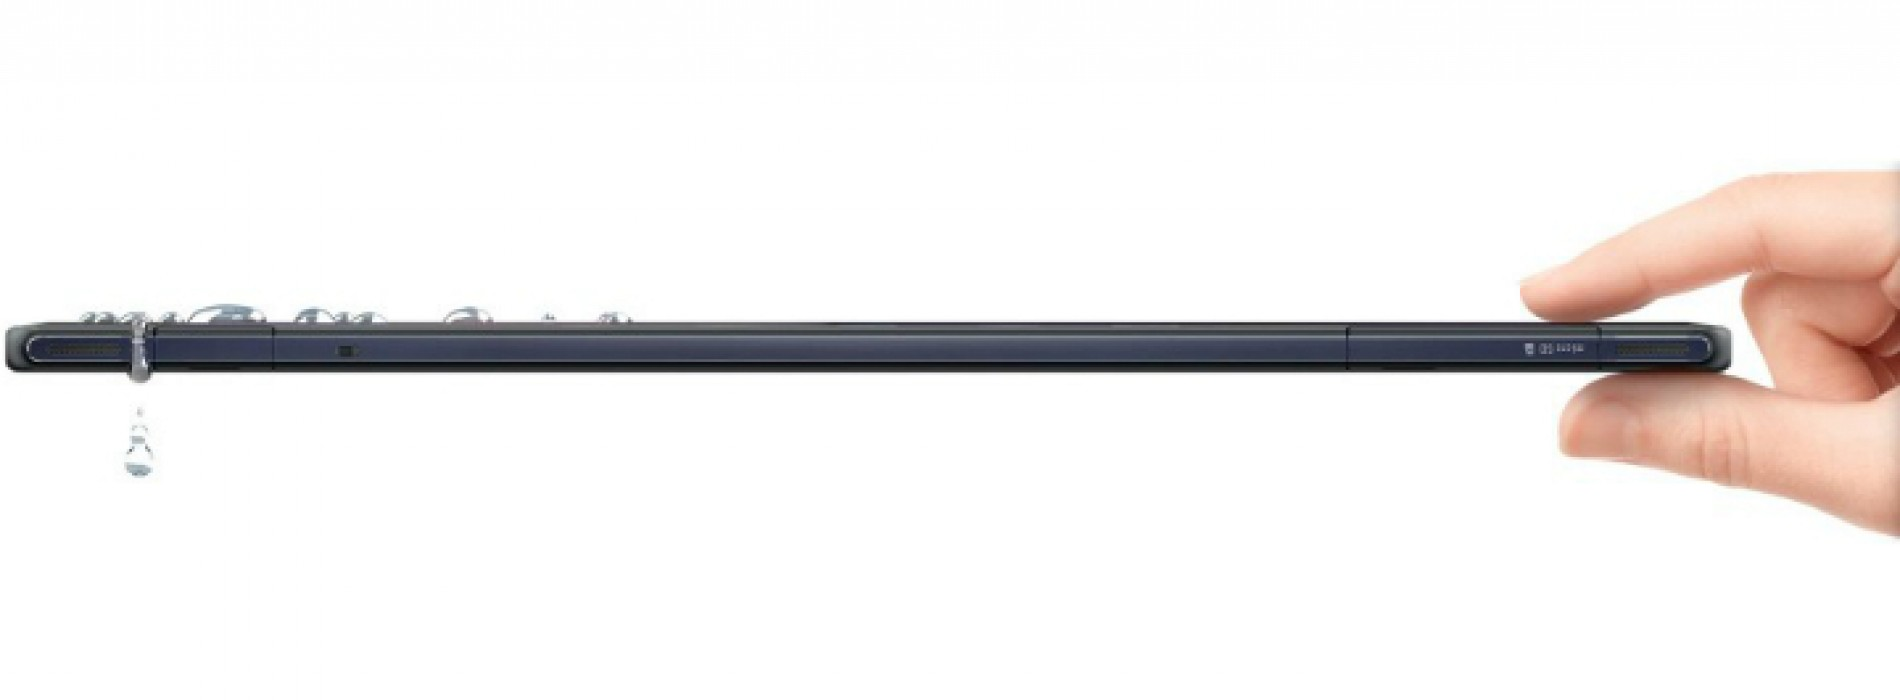 Sony intros 'world's slimmest and lightest tablet', Tablet Z